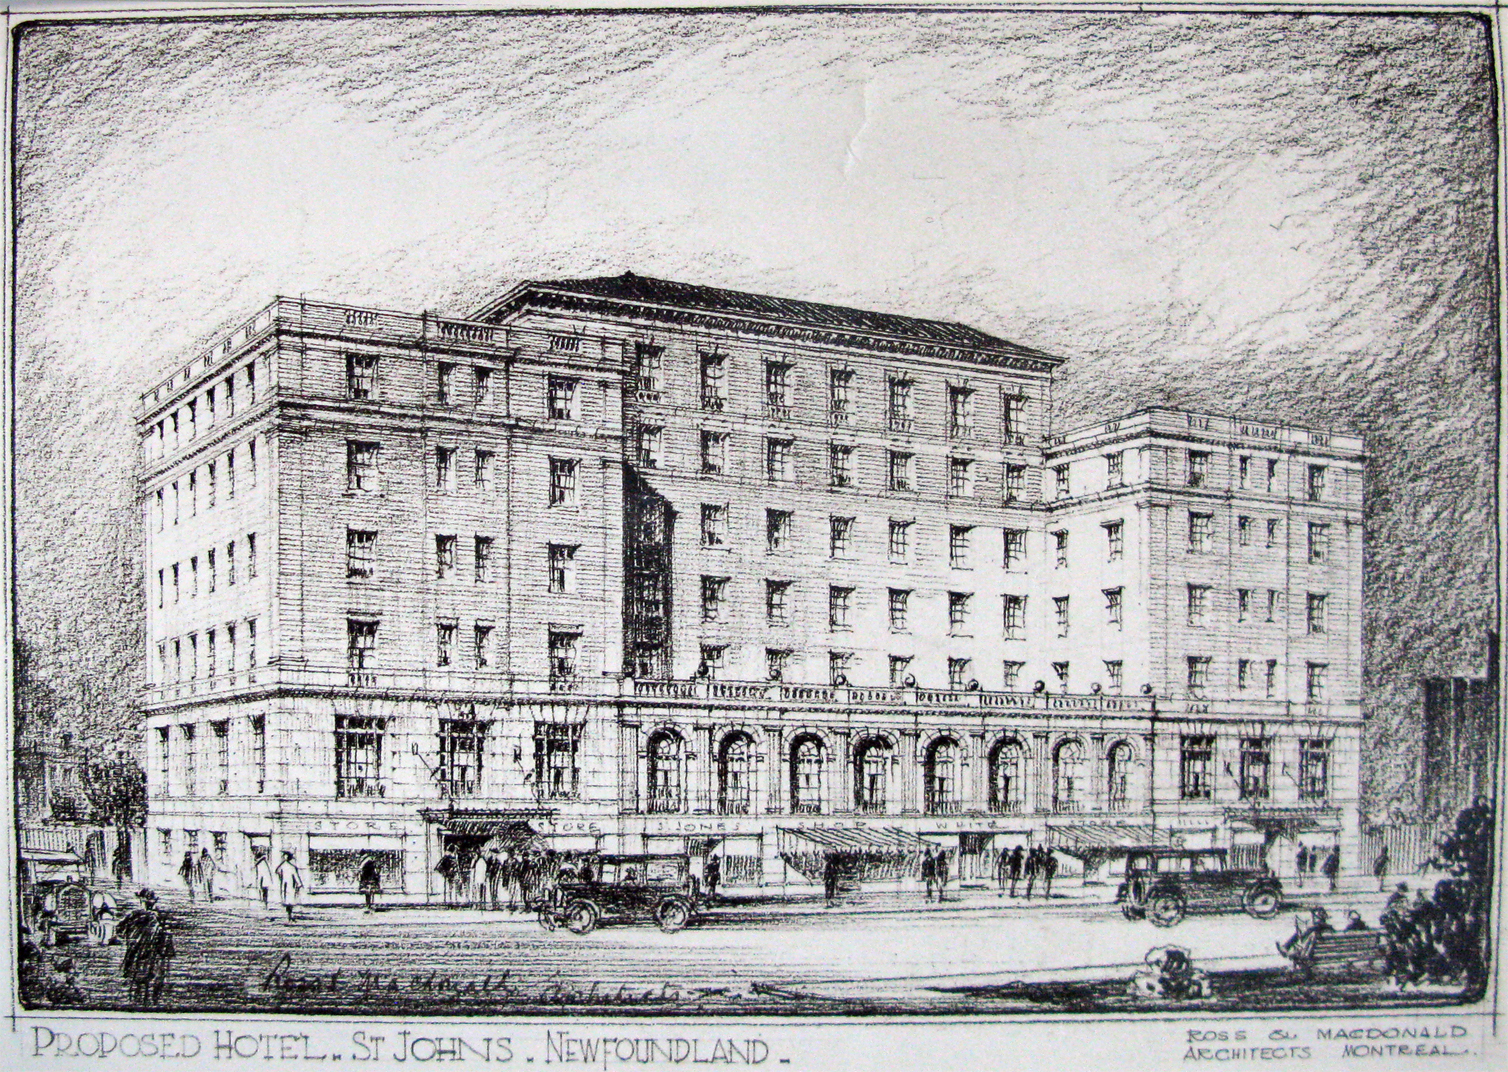 Fig. 1. Ross and Macdonald Architects, perspective drawing of the proposed Newfoundland Hotel, St. John's, 1924. The image shows a black-and-white perspective drawing of a seven-storey building.